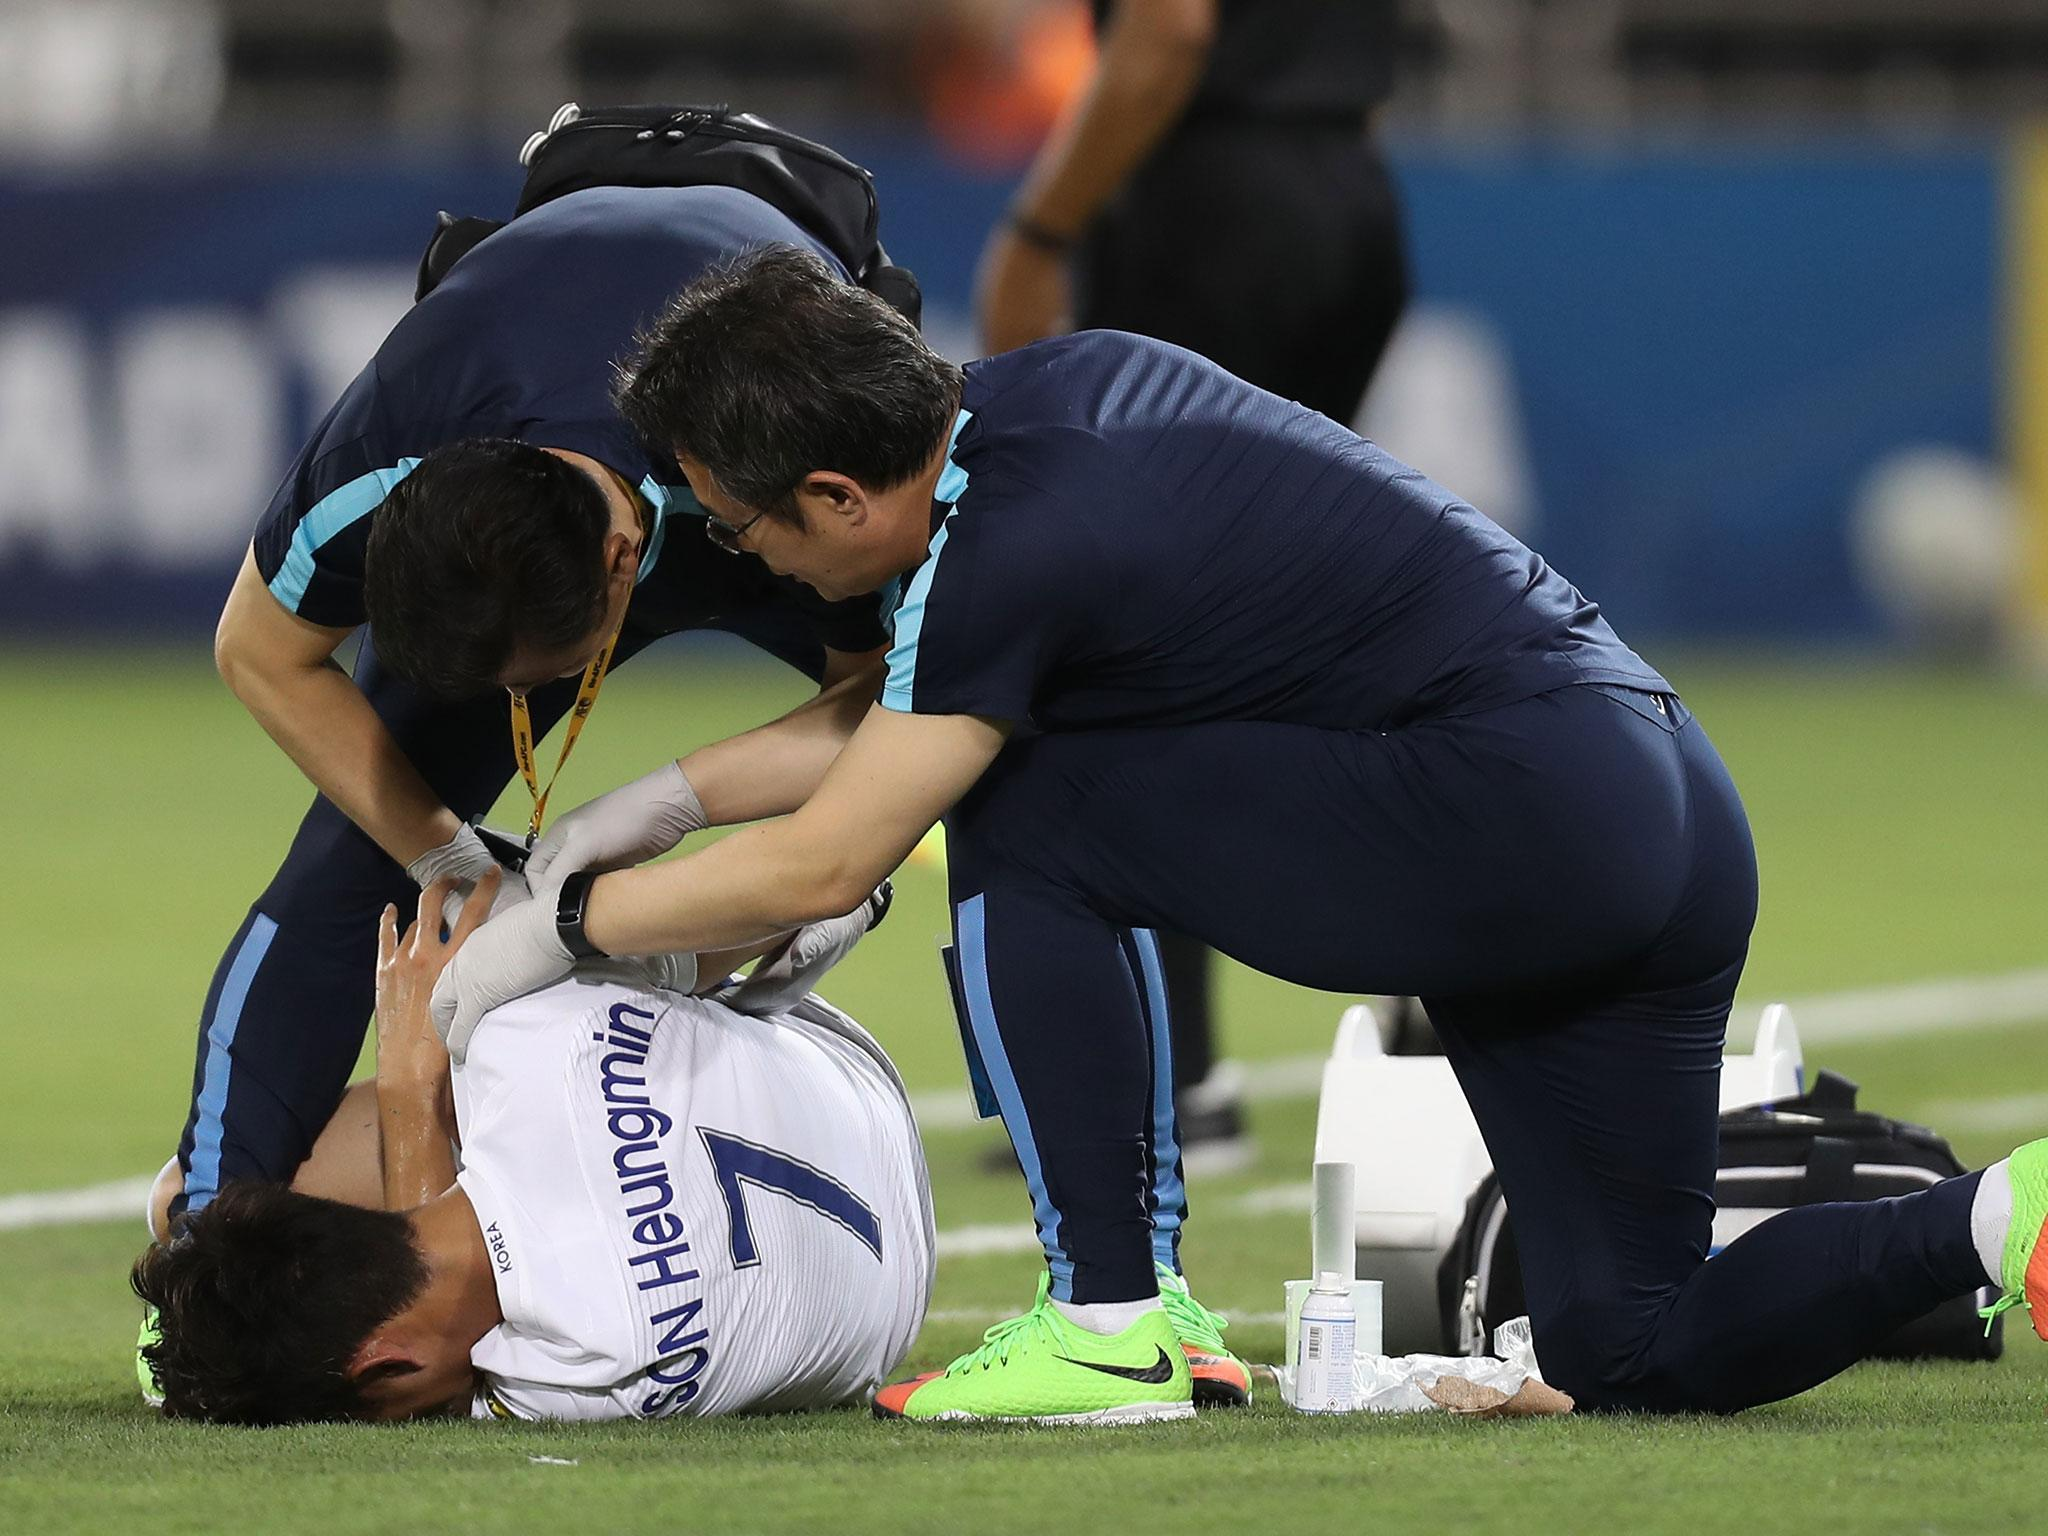 Tottenham's Son Heung-min likely to miss start of pre-season after suffering suspected broken arm with South Korea